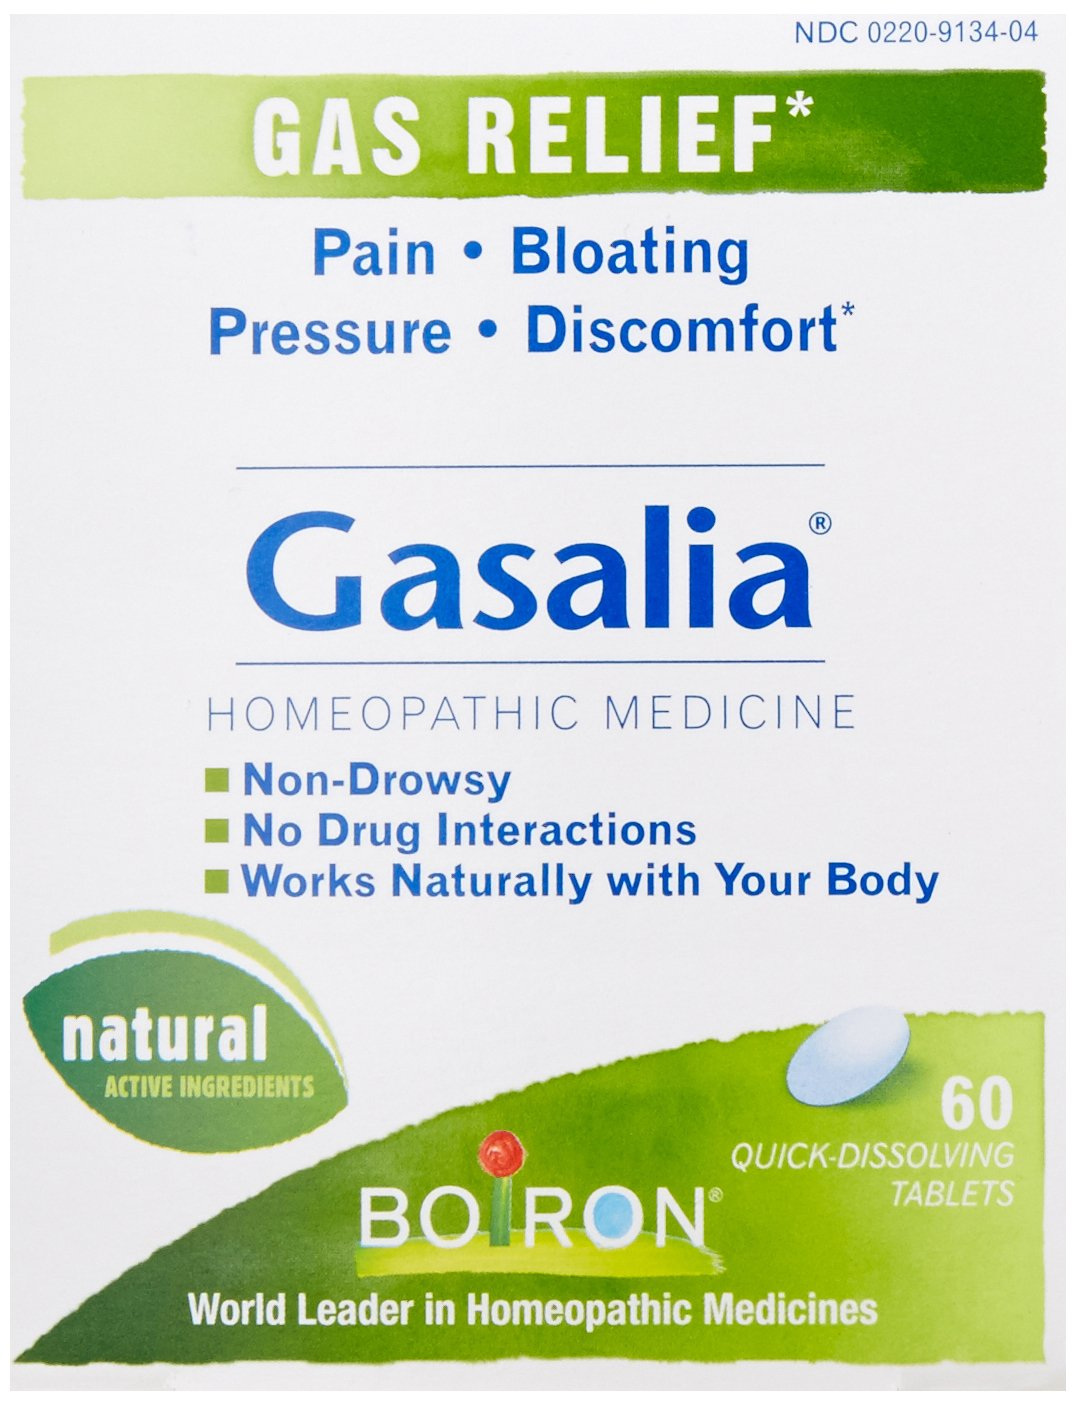 Boiron Gasalia, 3 Pack, (60 Tablets per Pack), Homeopathic Medicine for Gas Relief by Boiron